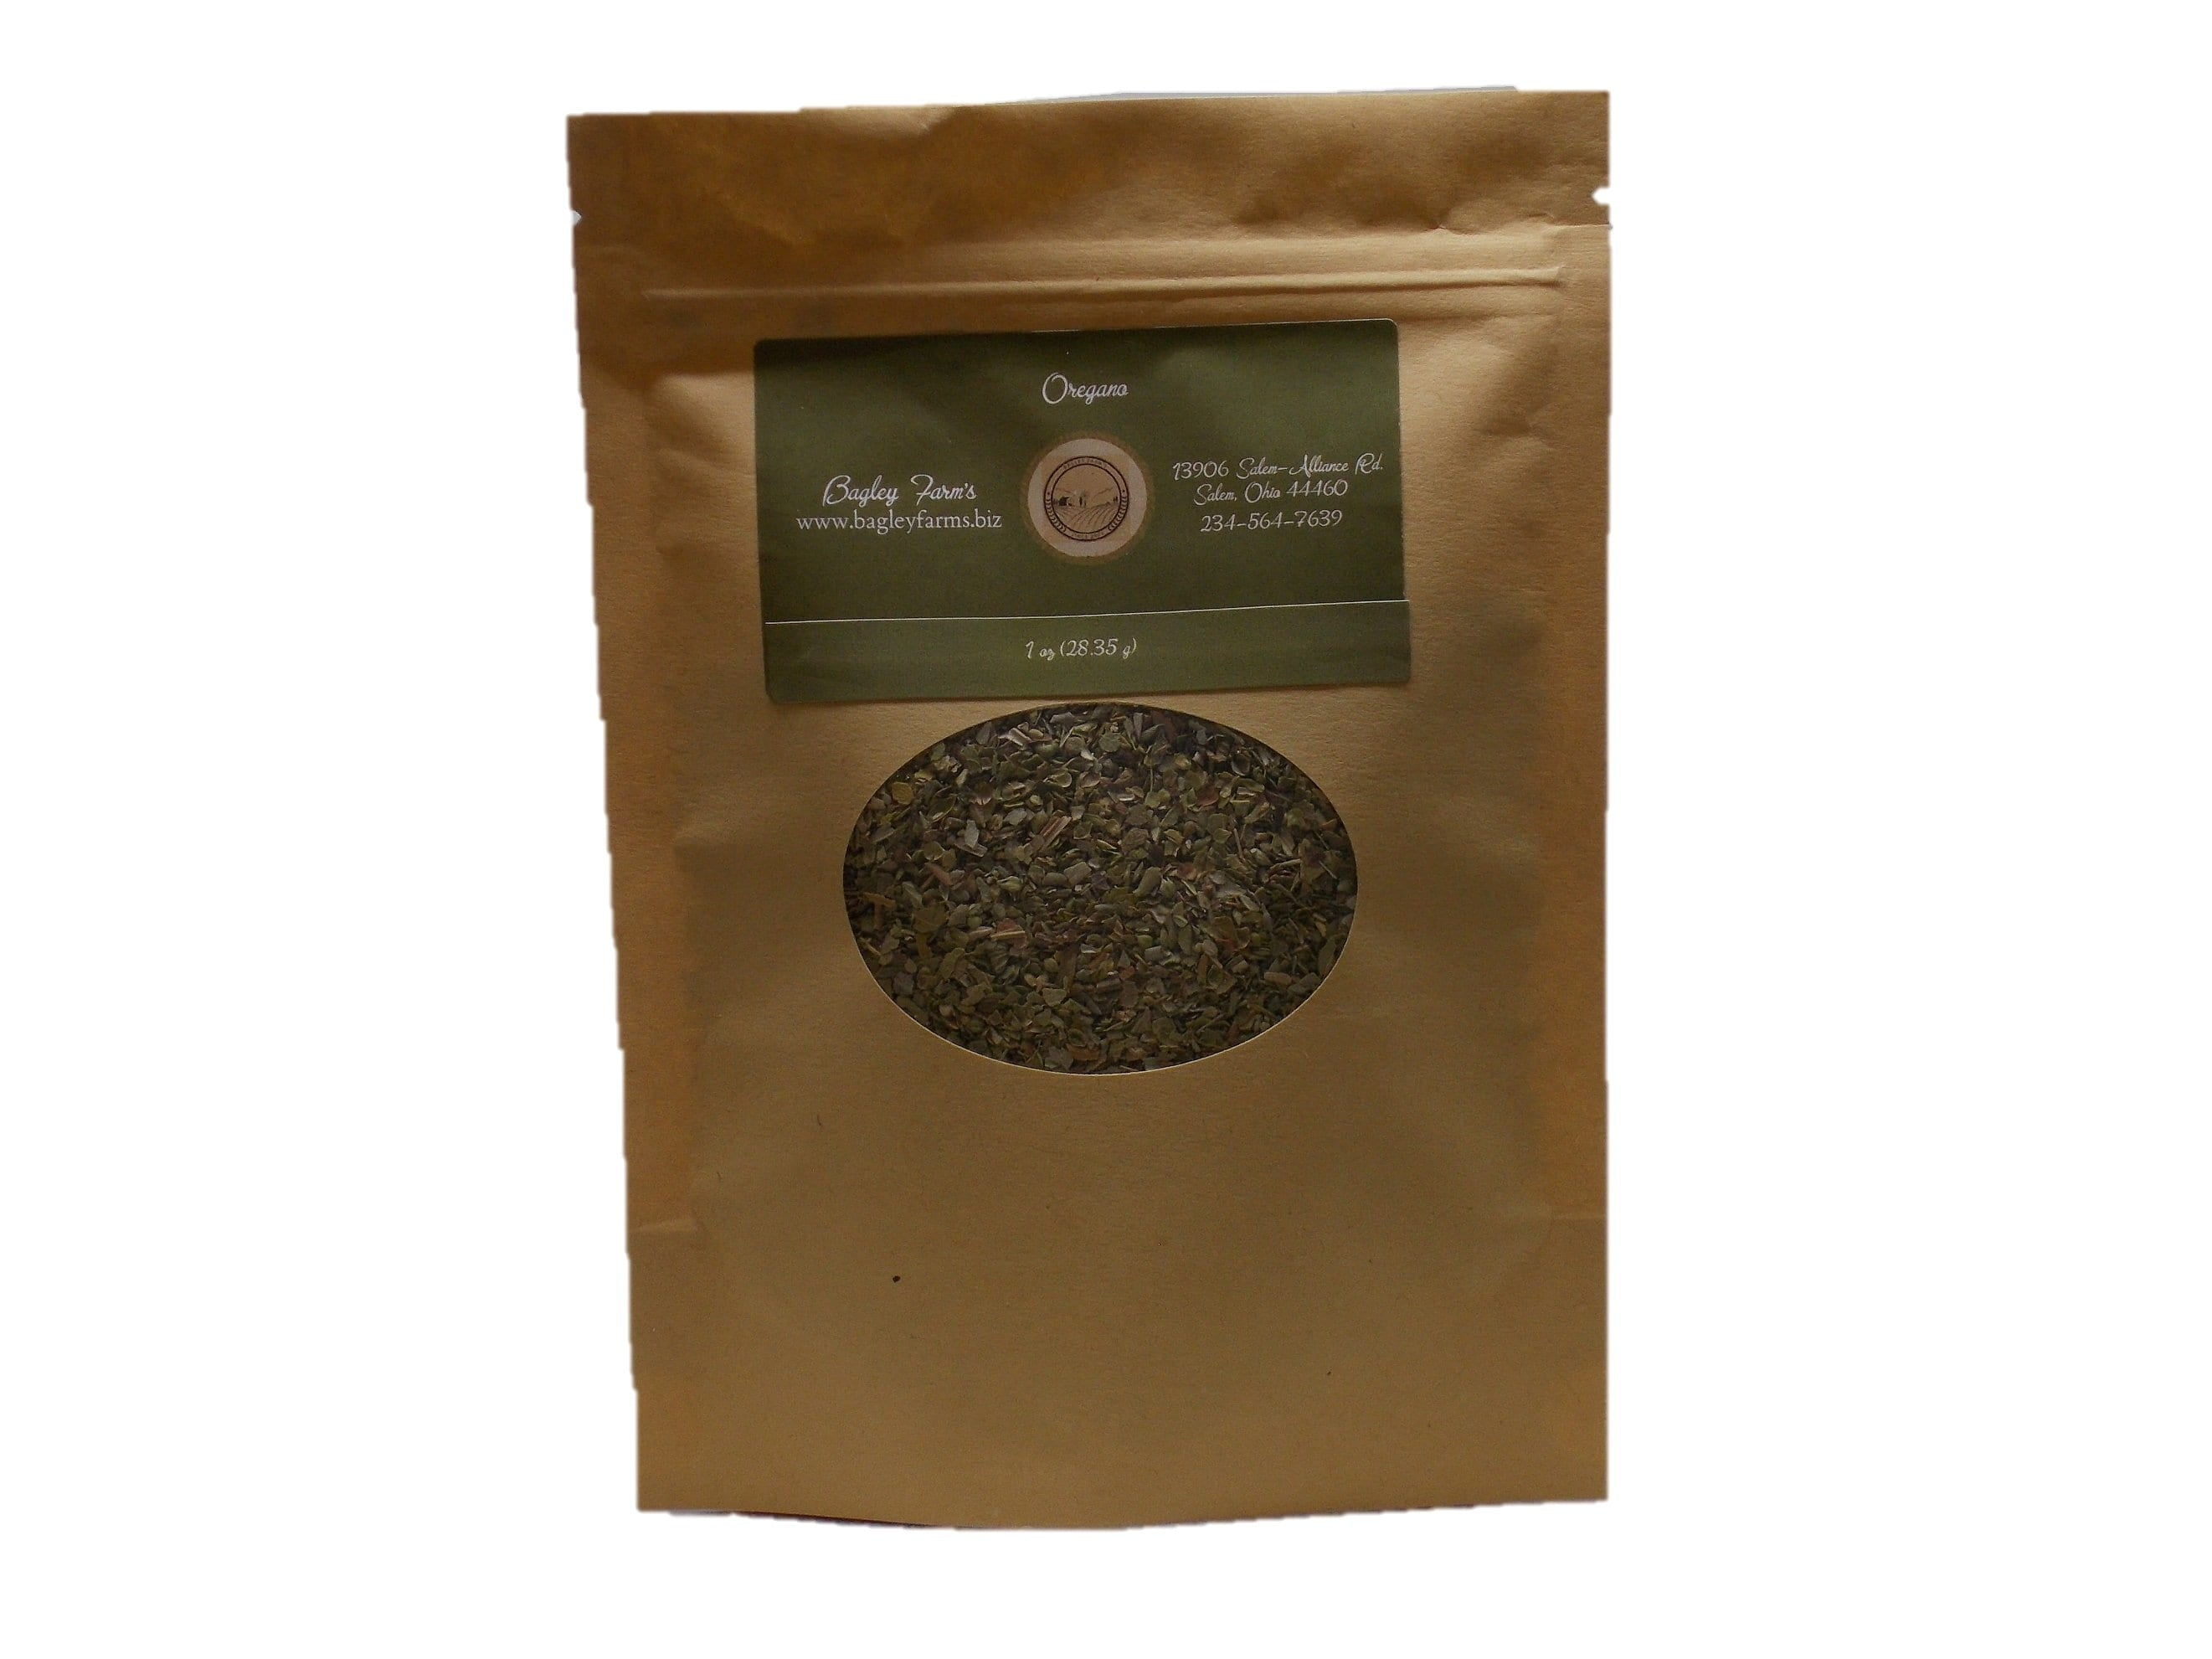 Bagley Farm's Cut Oregano 1 oz